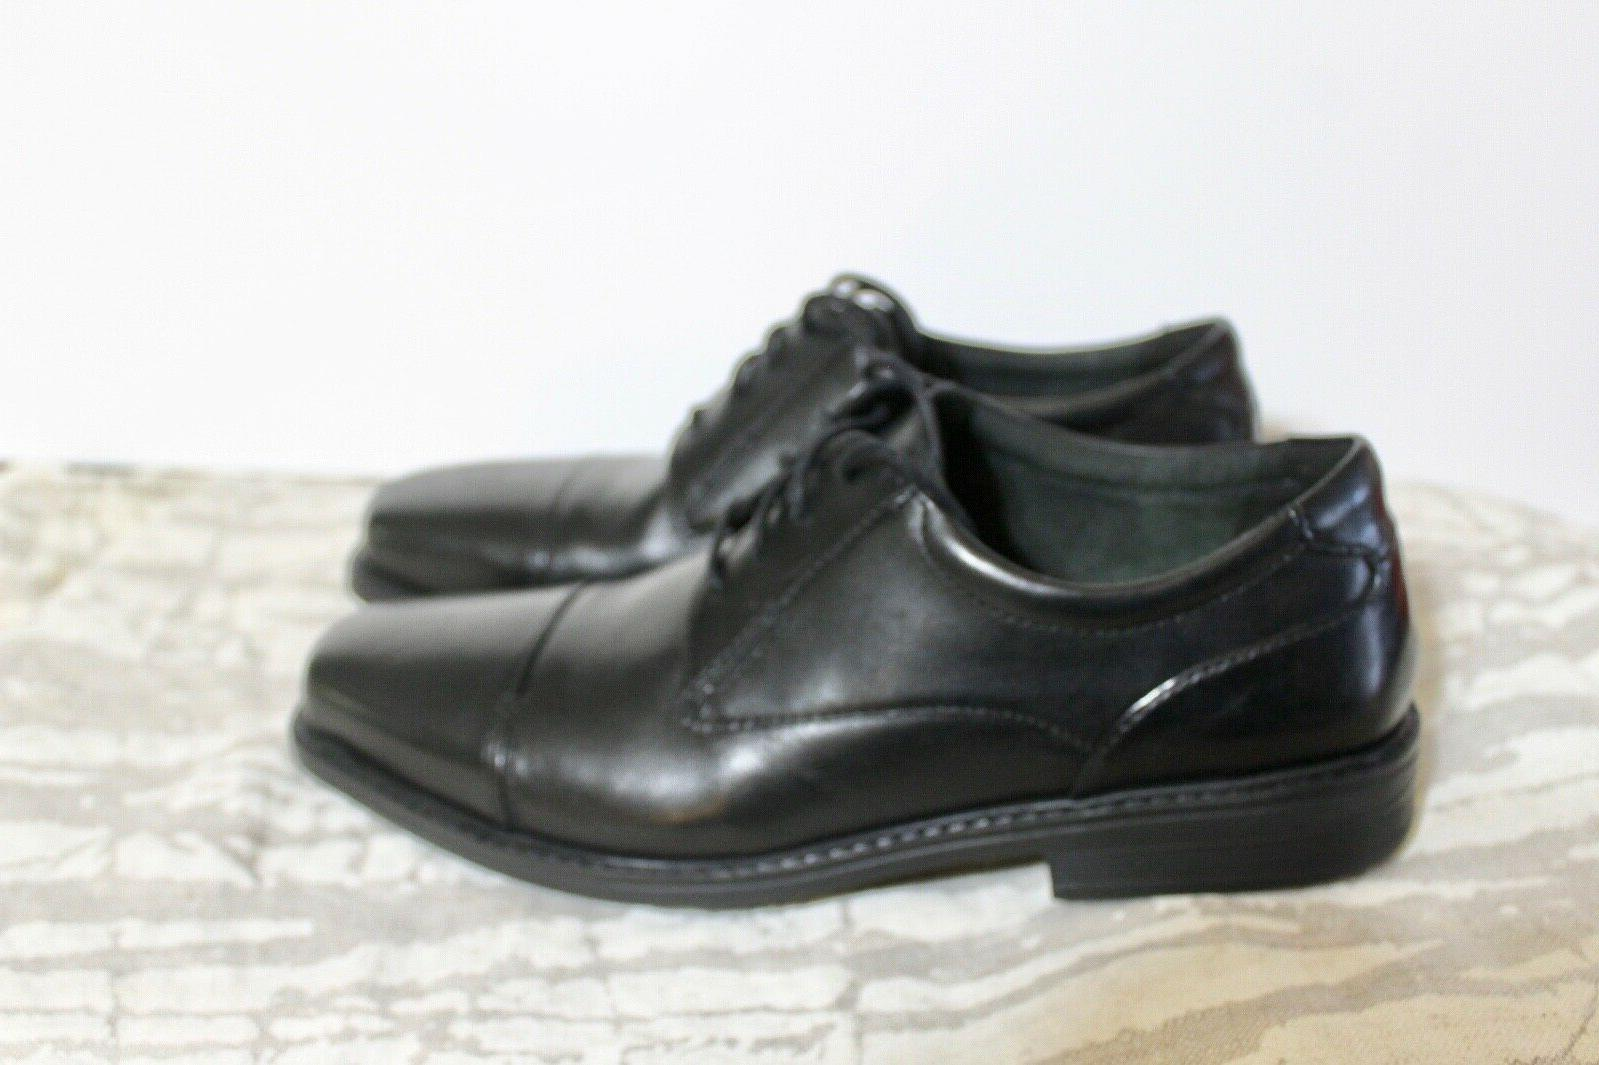 Size 8W Bostonian WENHAM OXFORD leather shoes